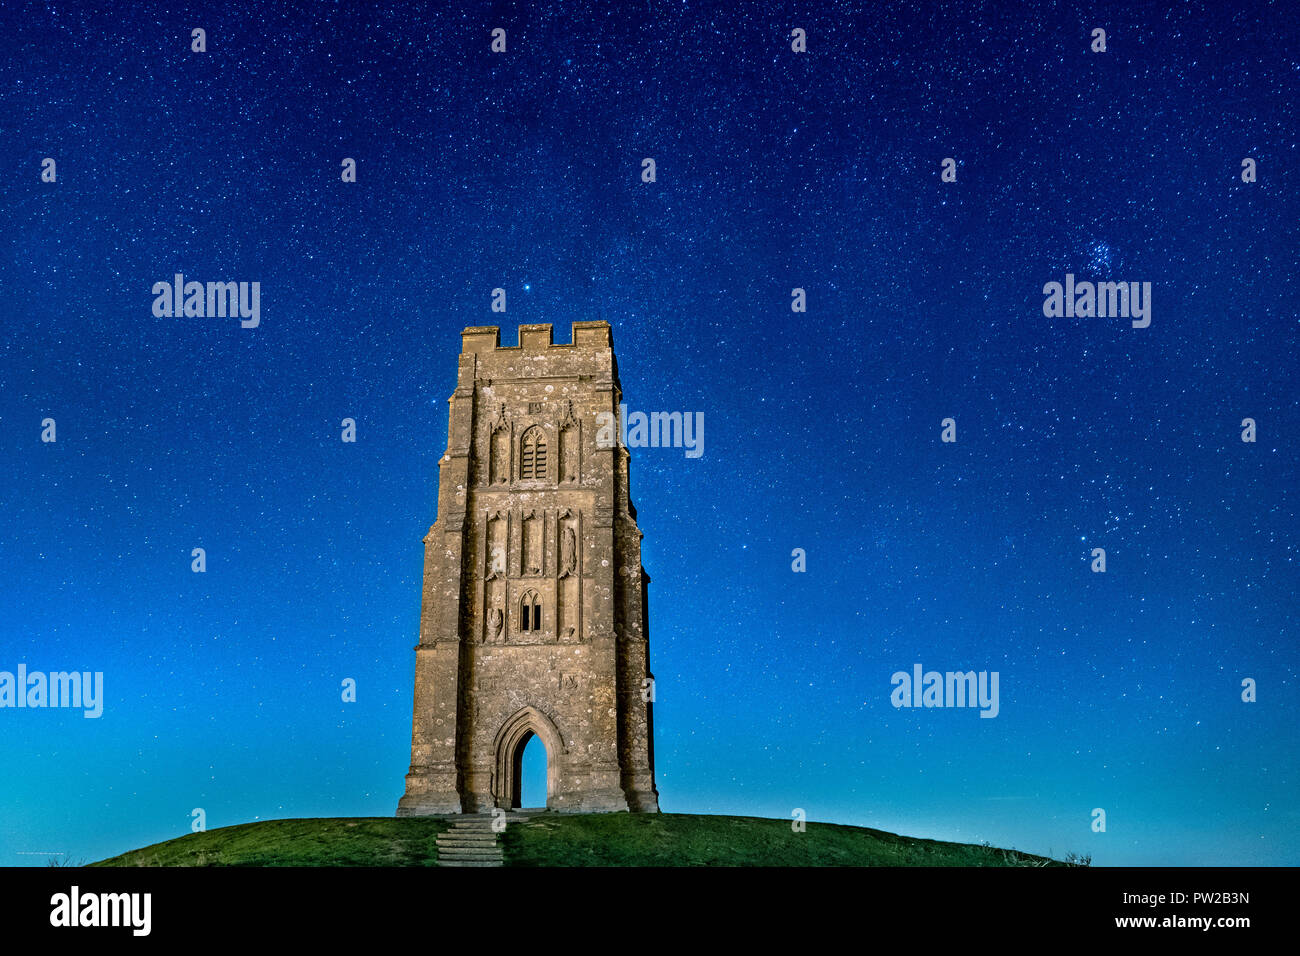 Glastonbury Tor at Night with Many Stars in the Sky - Stock Image